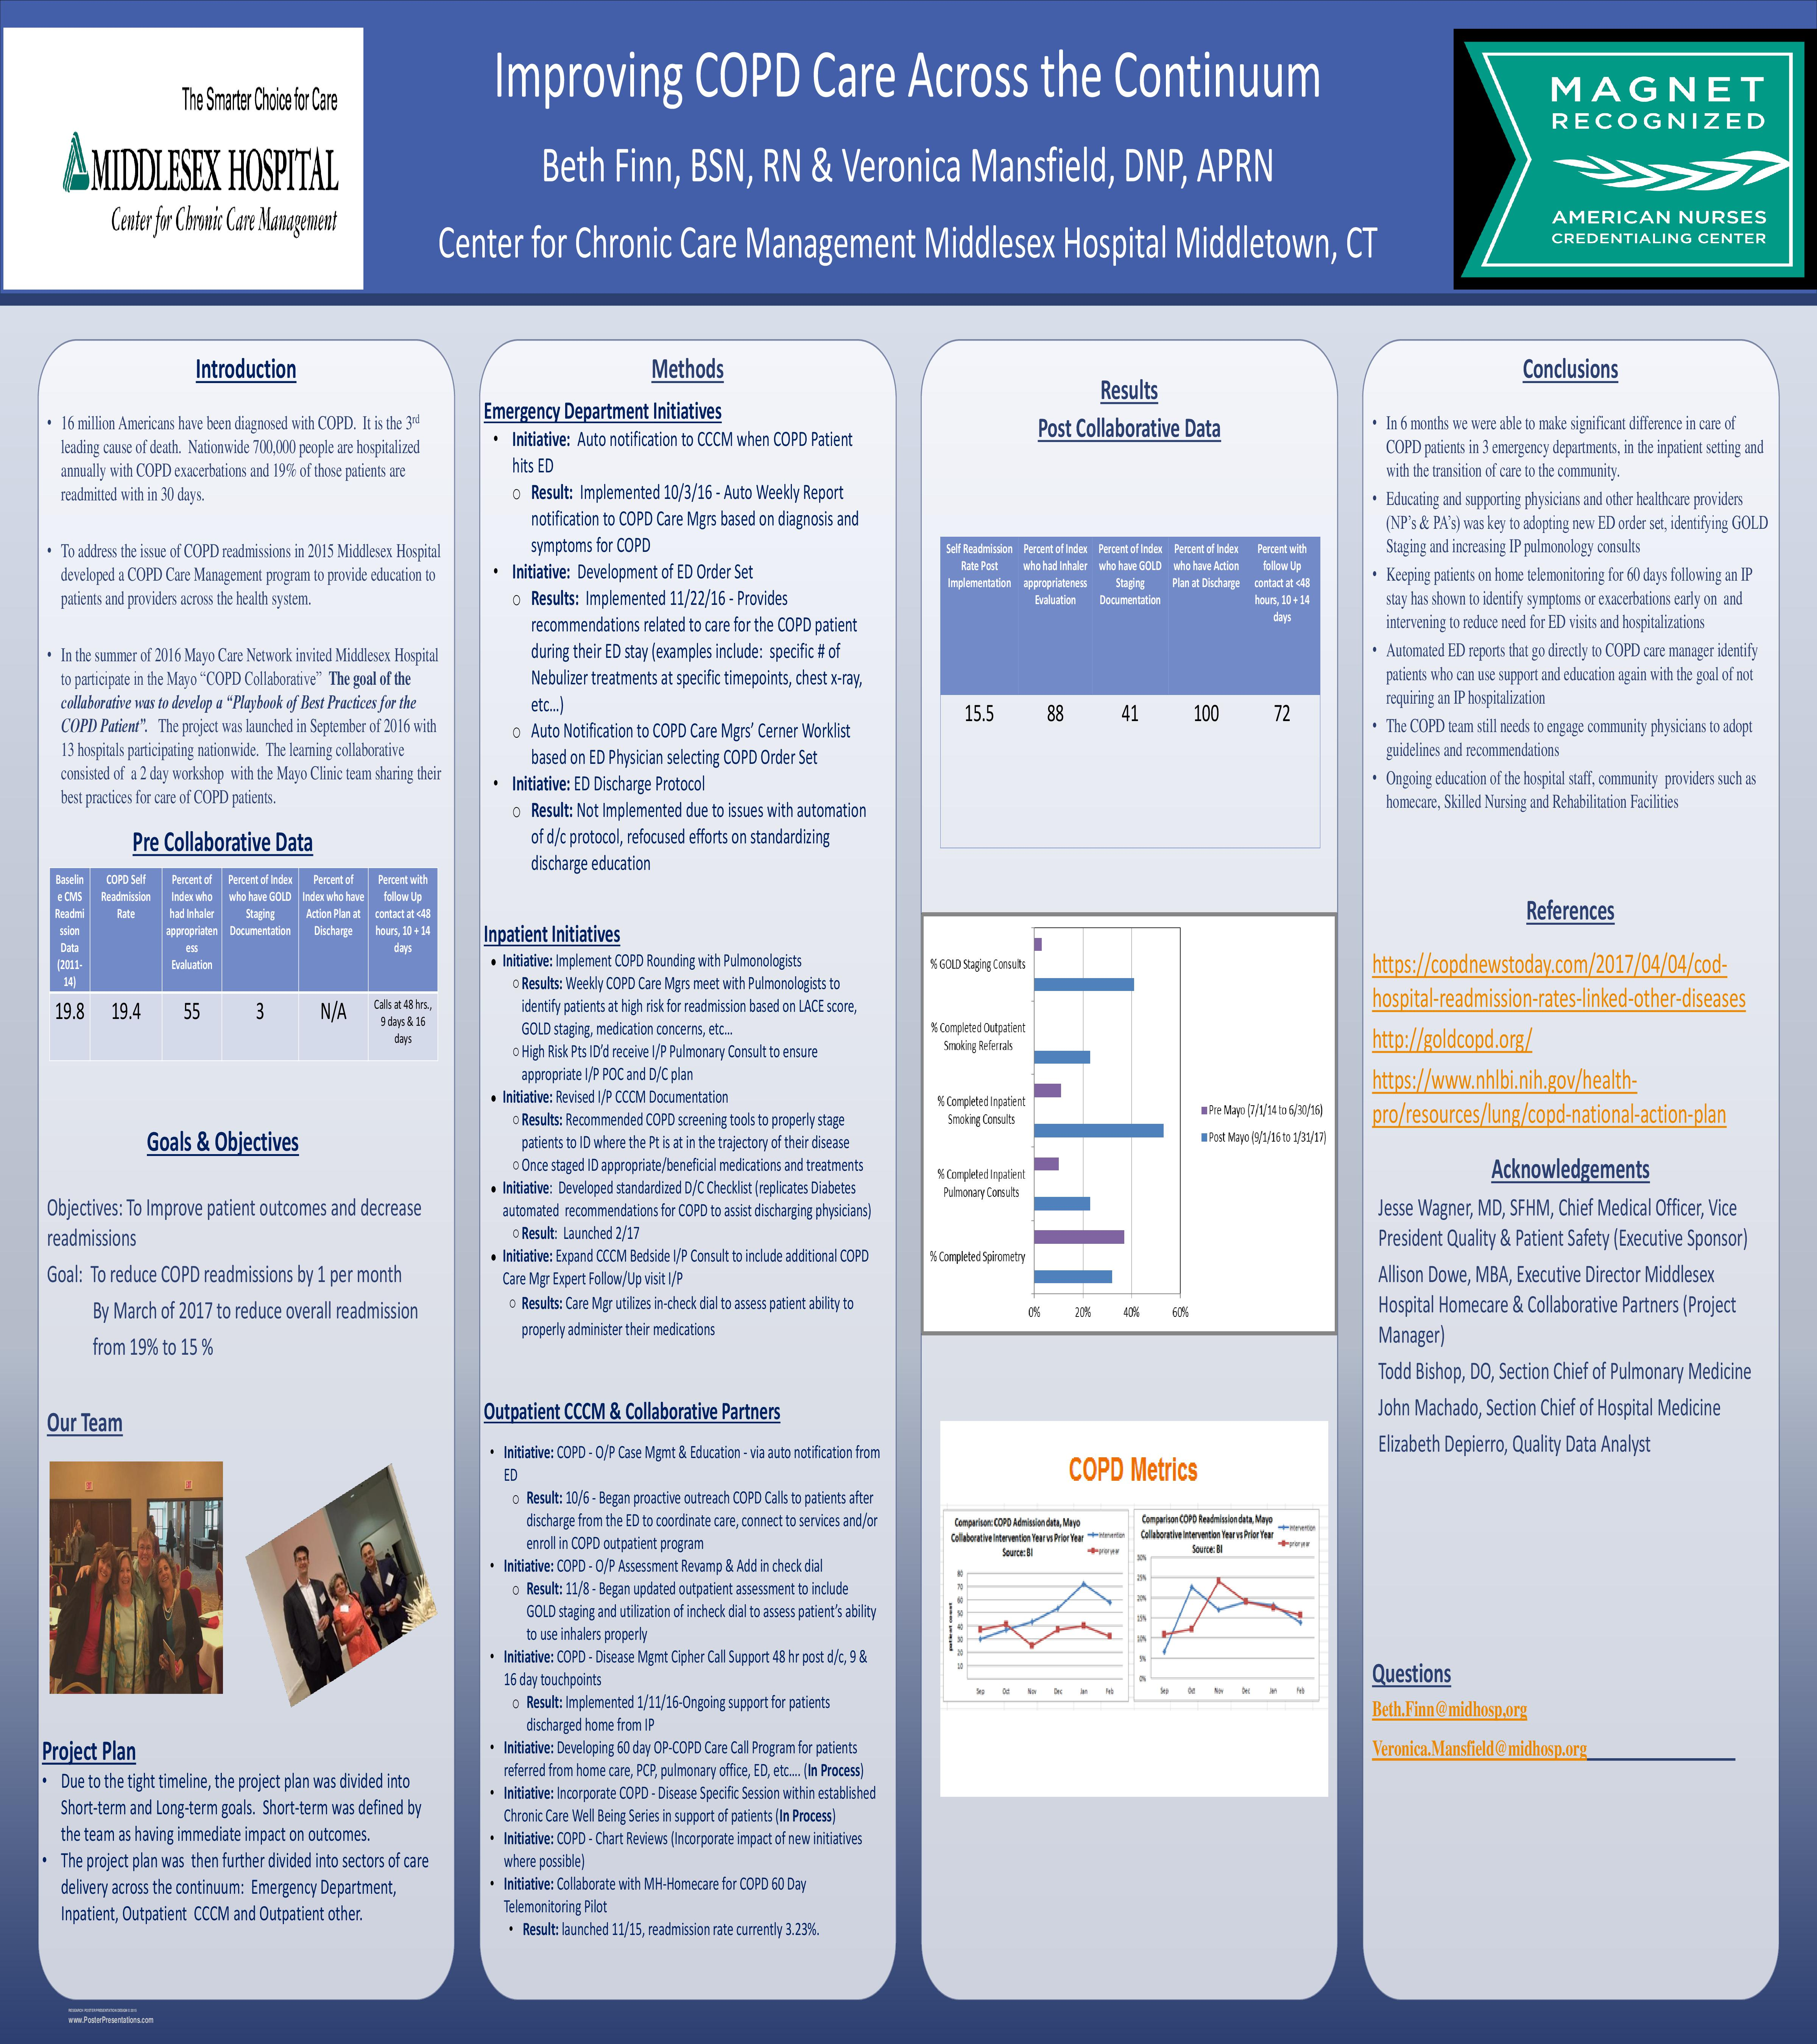 COPD IHI posterFinal